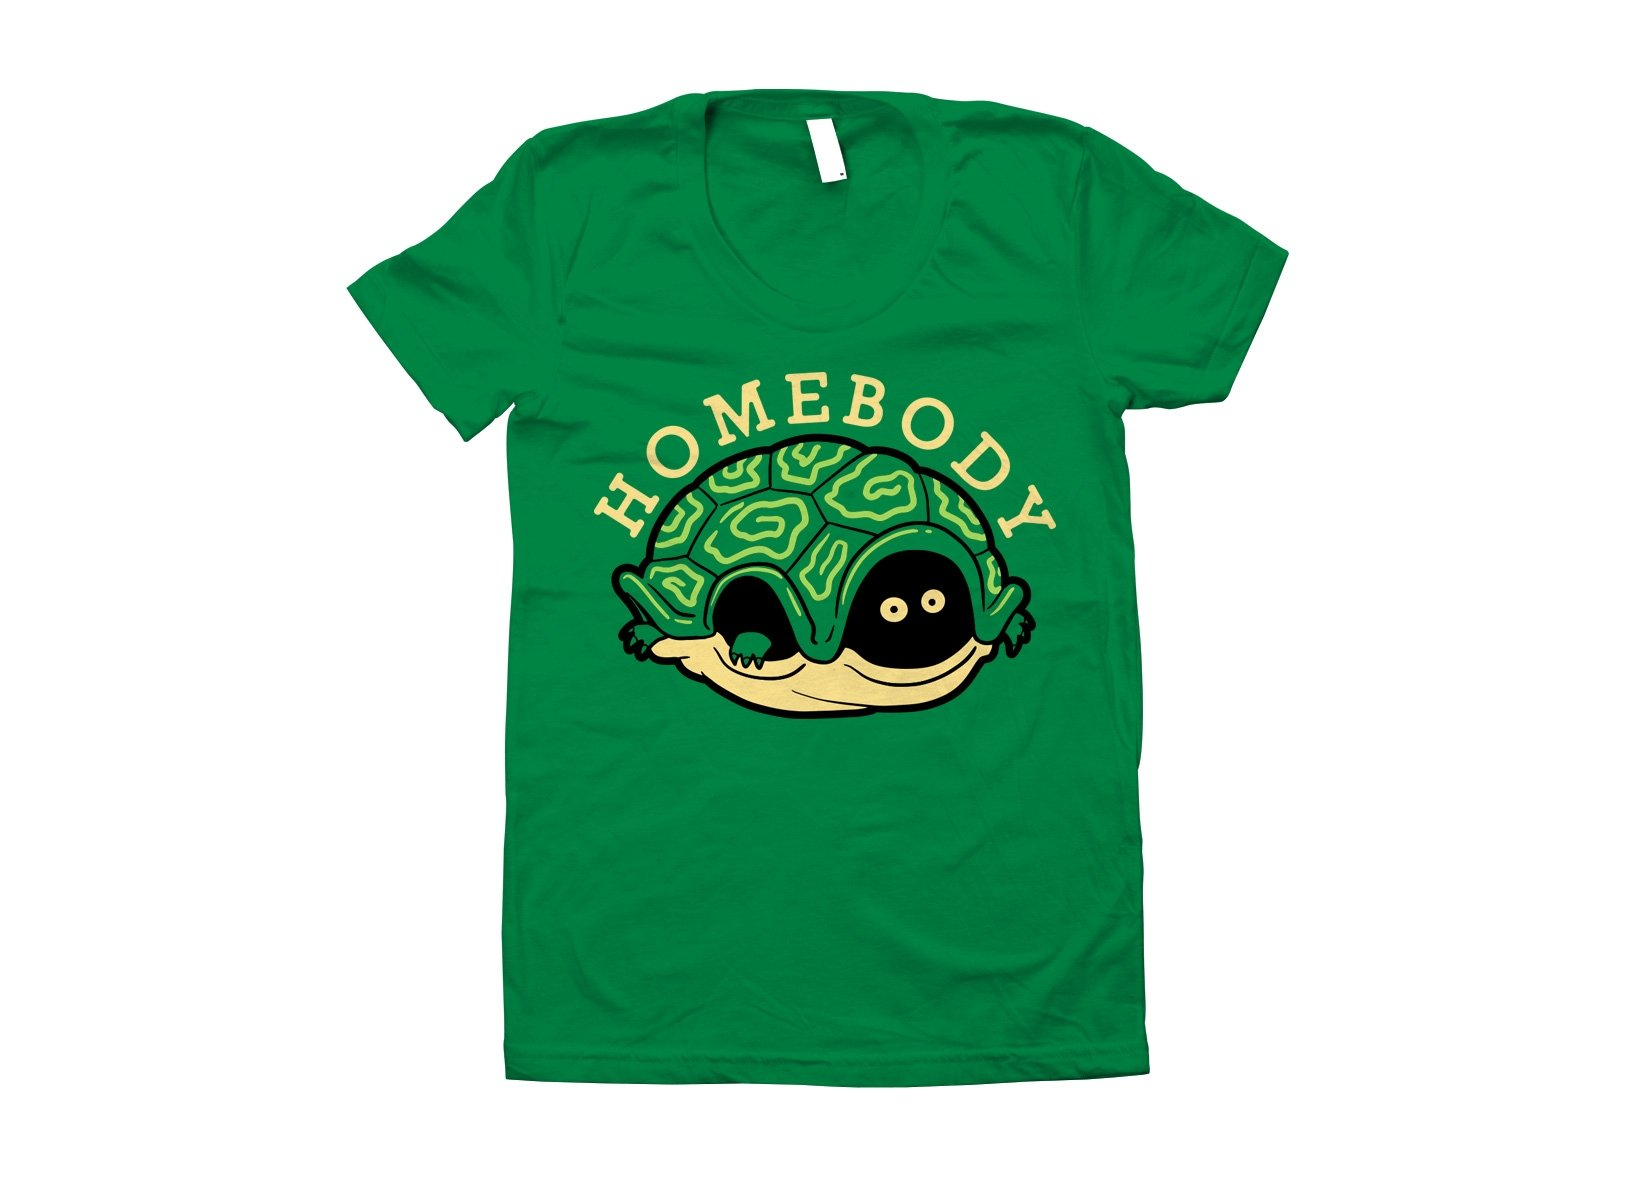 Homebody on Juniors T-Shirt